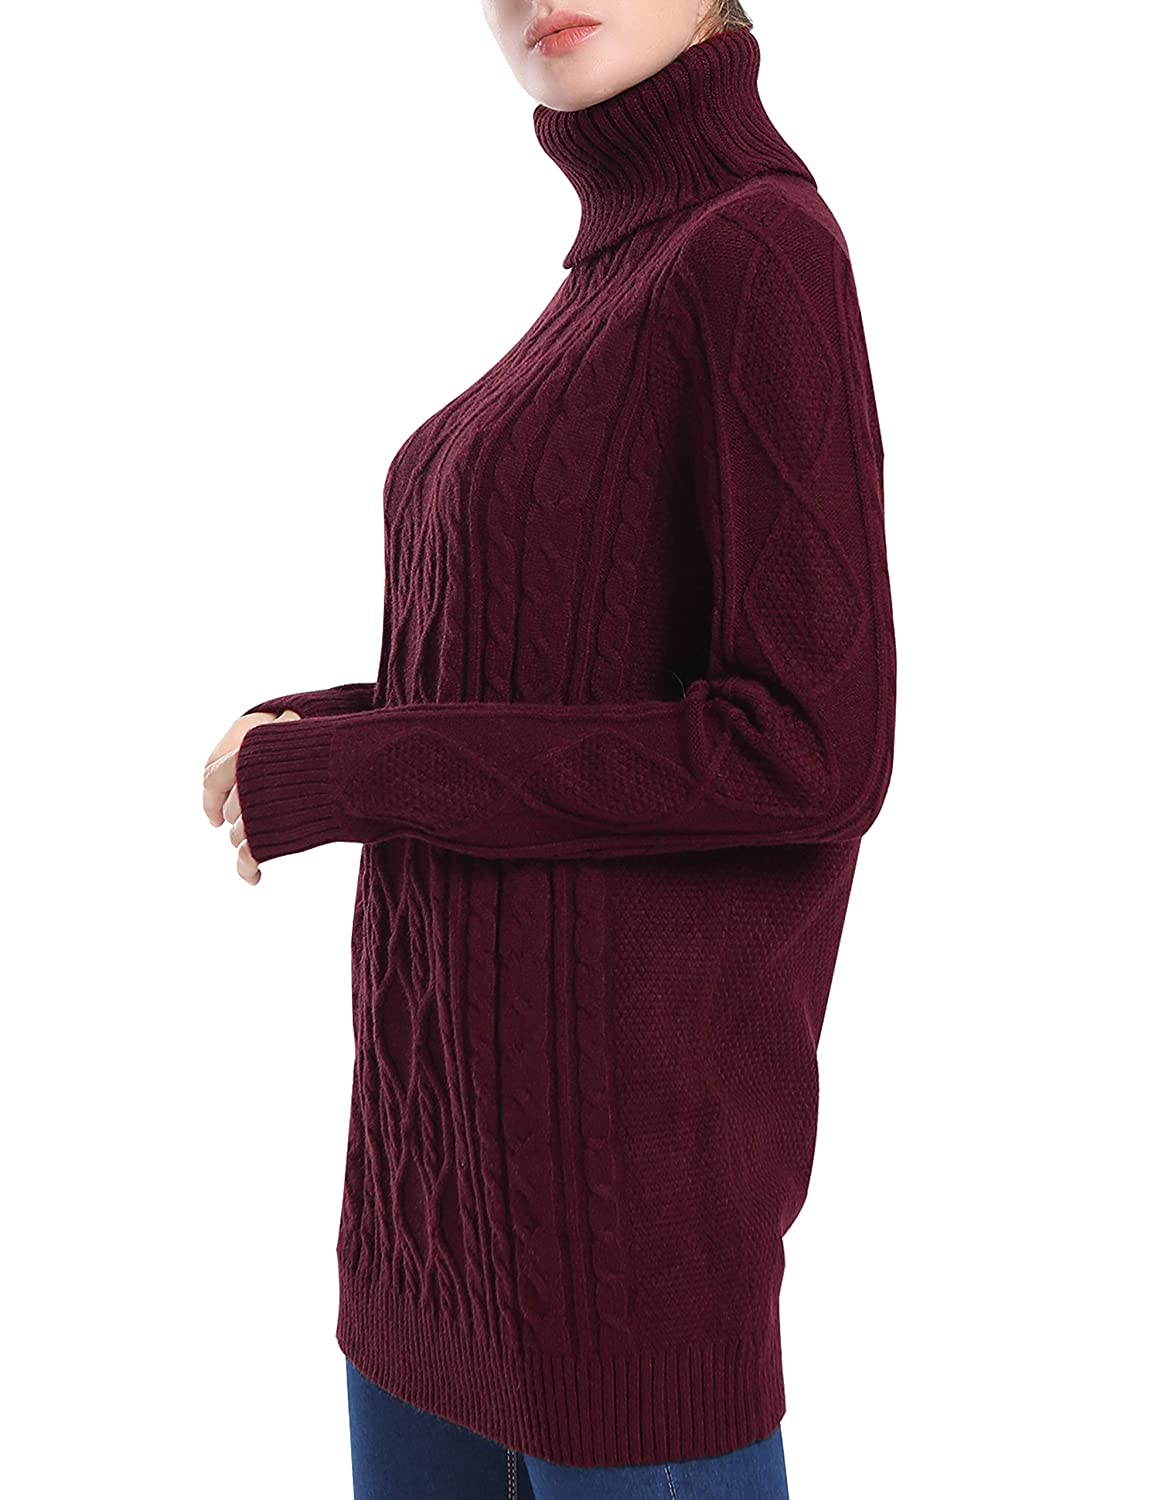 PrettyGuide Women s Long Sweater Turtleneck Cable Knit Tunic Sweater Tops  at Amazon Women s Clothing store  2e277fb3c